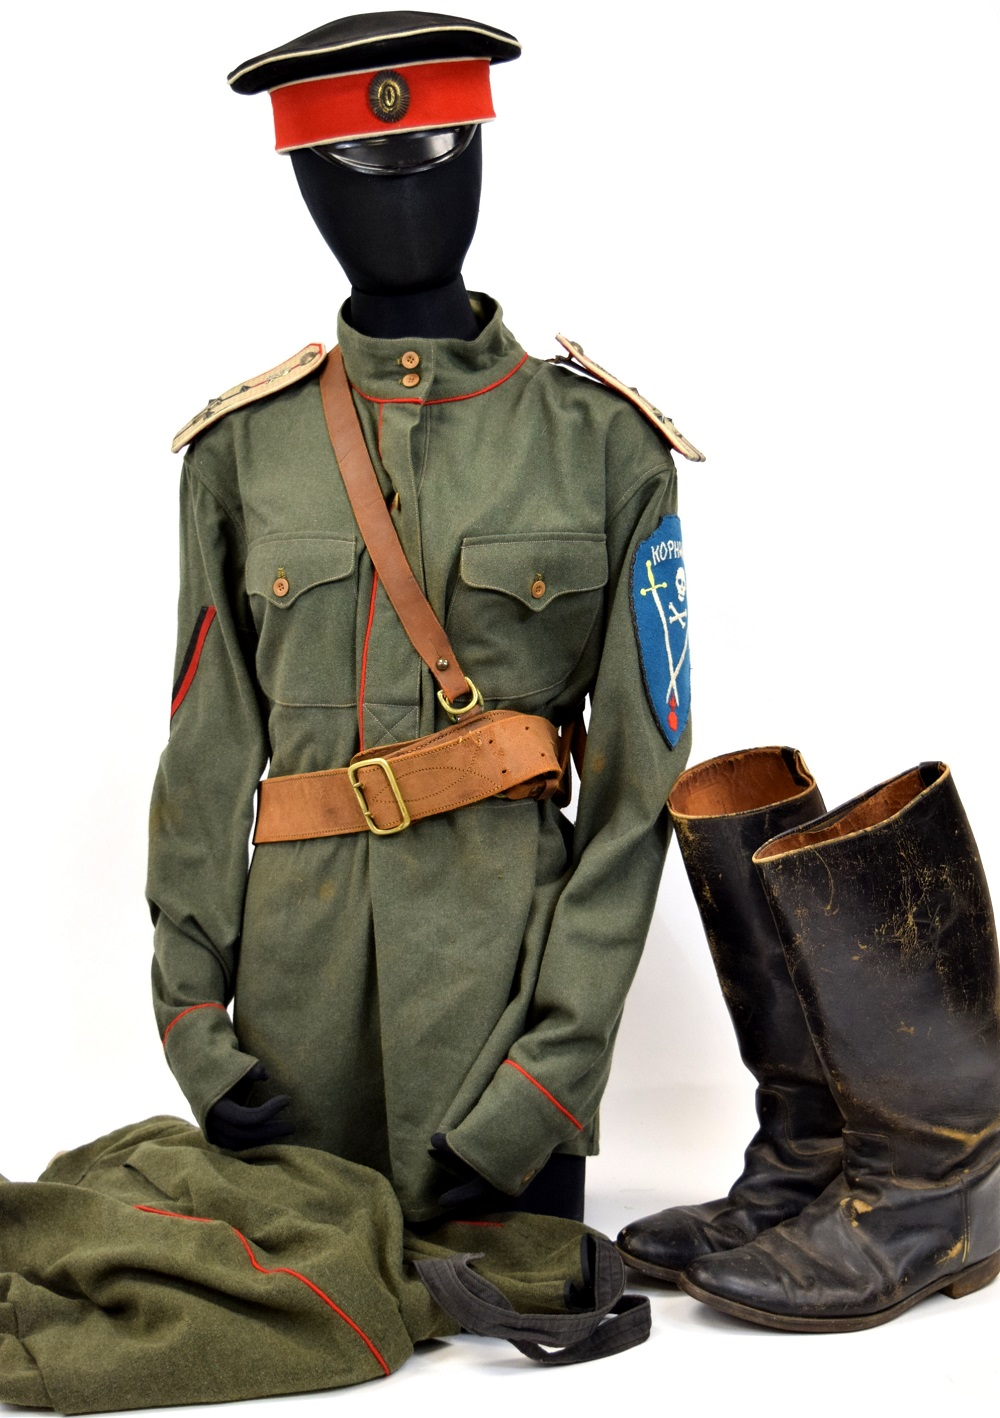 Circa 1917-1920 Russian White Army Kornilov Regiments Officers Complete Uniform with Hat & Boots.